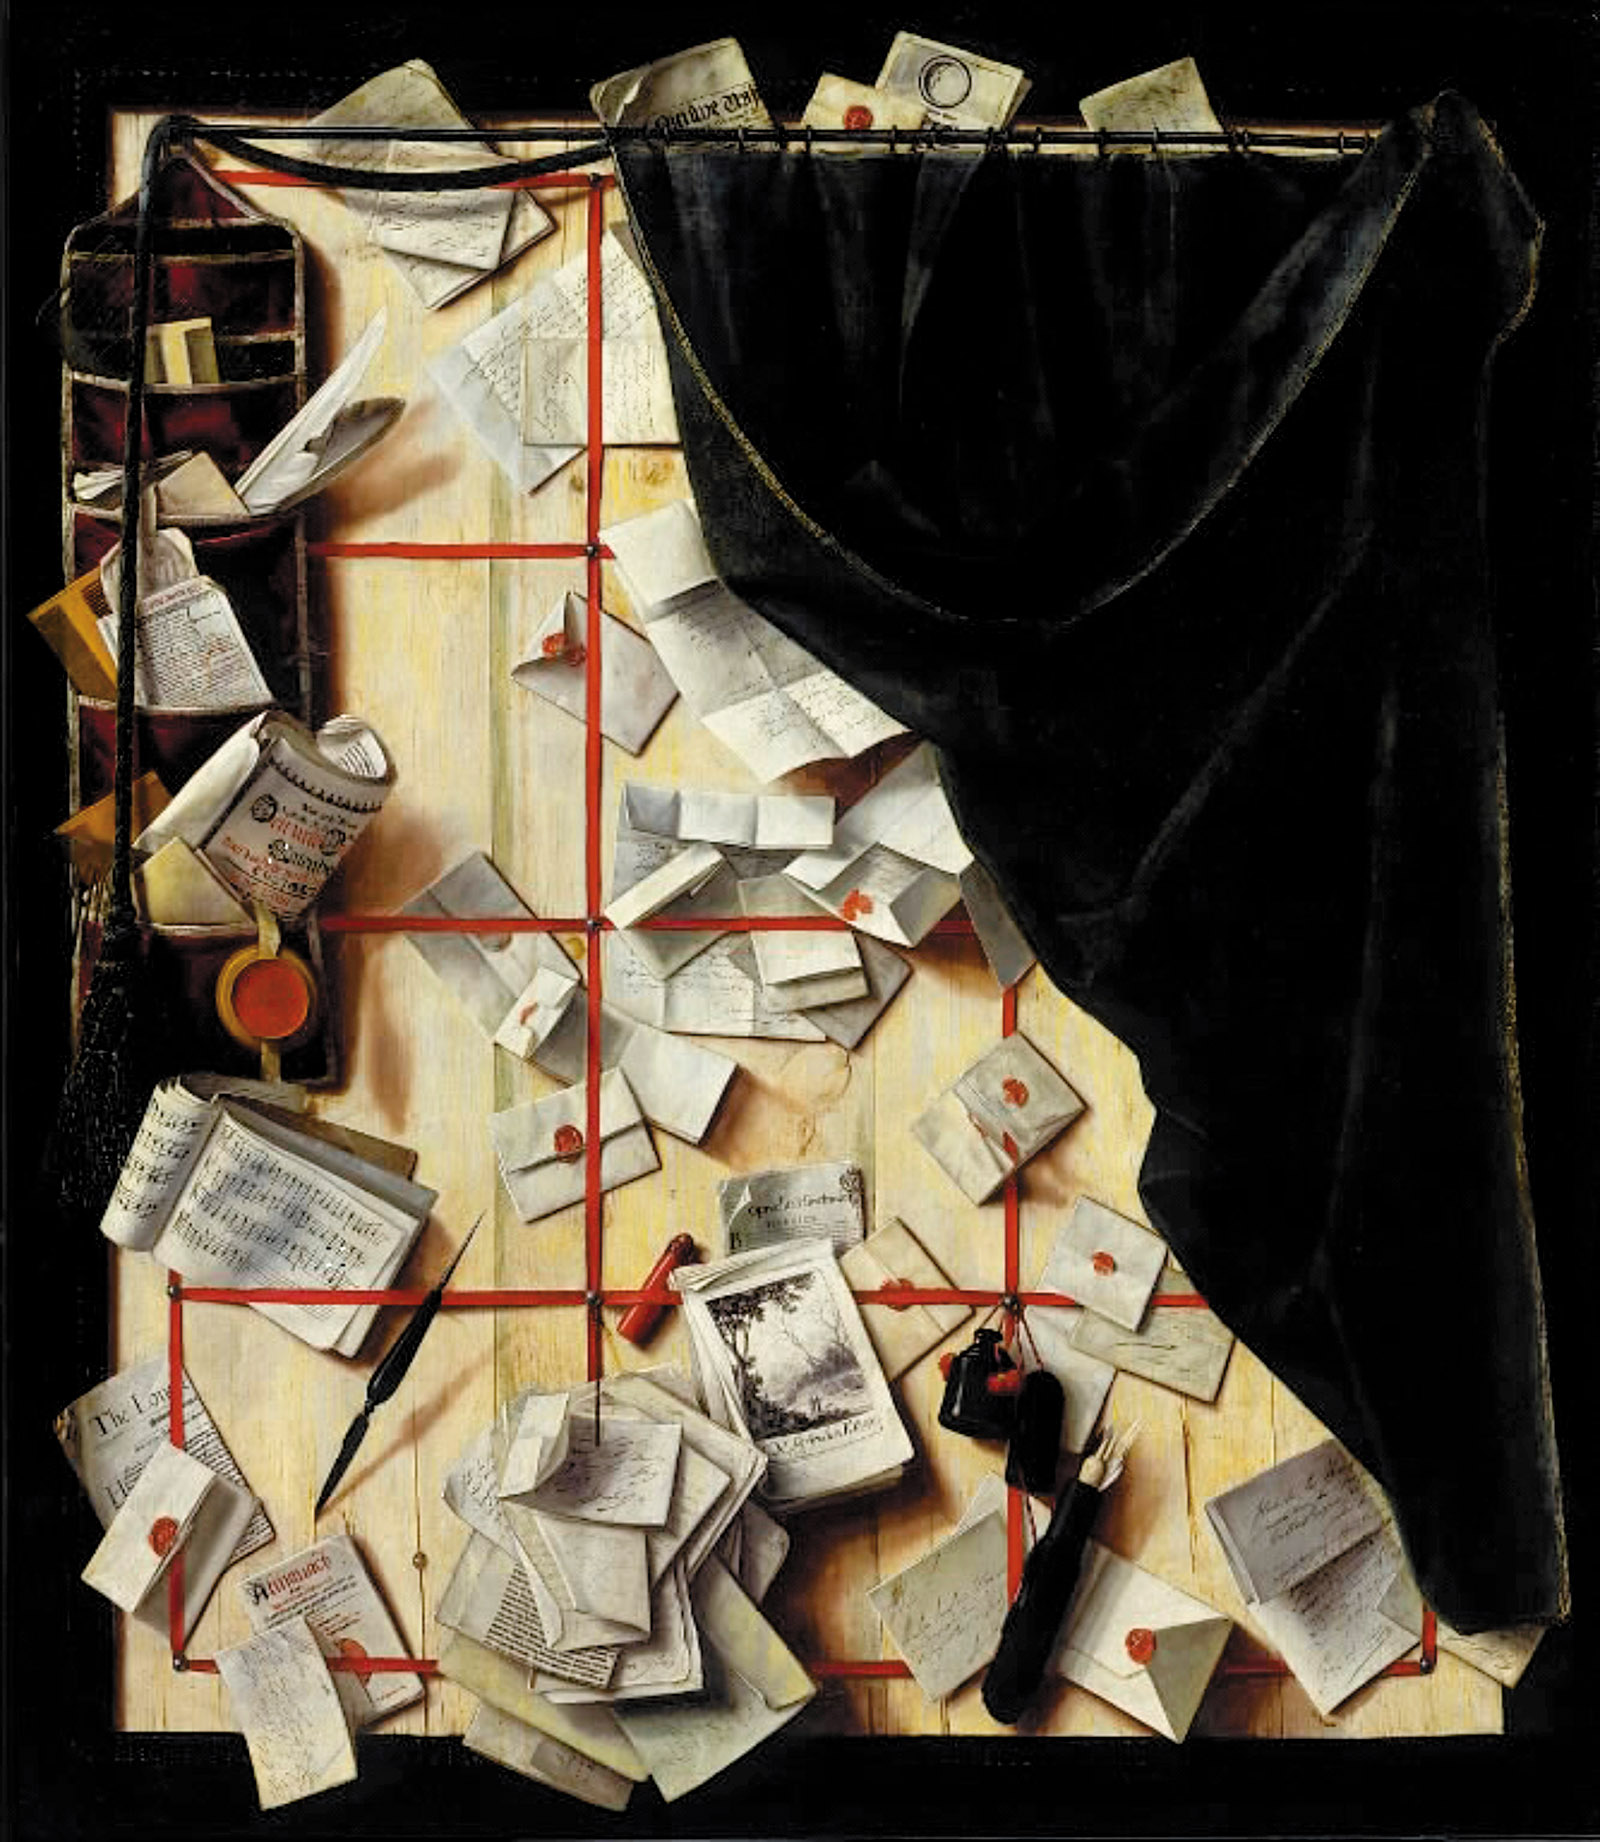 Trompe l'oeil, Board Partition with Letter Rack and Music Book, 1668; painting by Cornelius Norbertus Gijsbrechts